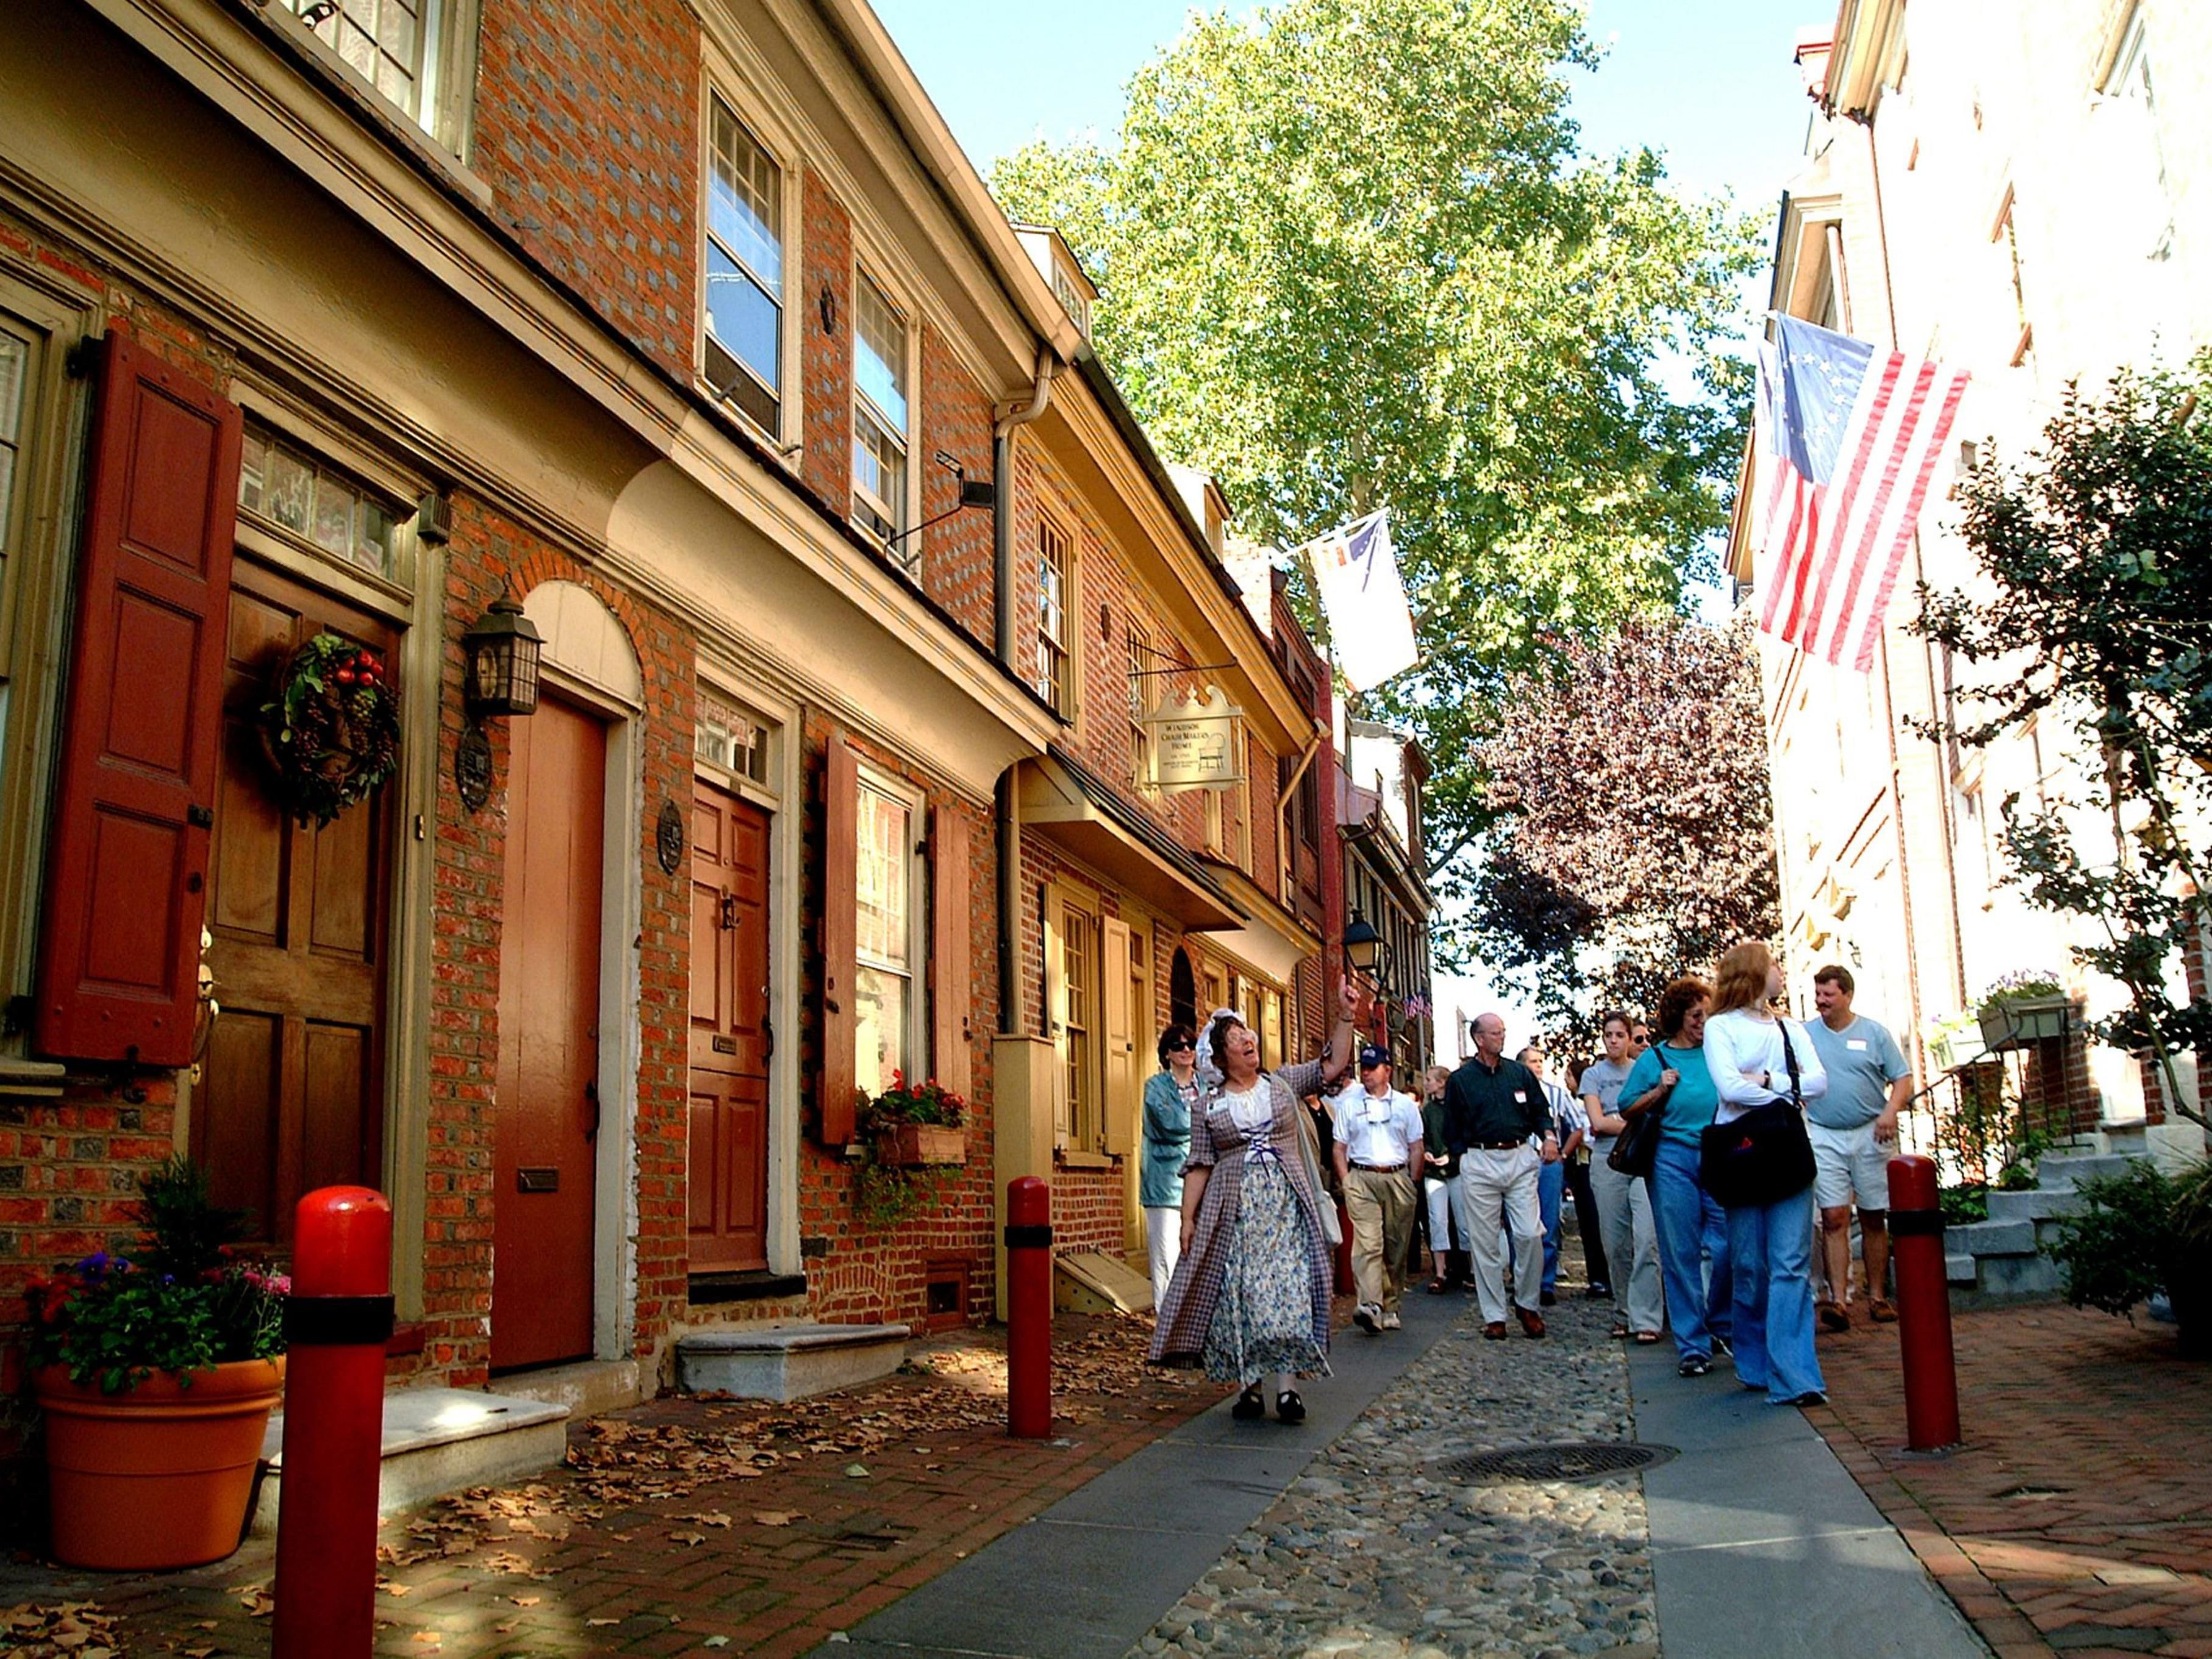 Elfreths Alley-the oldest residential cobblestone street in Philly